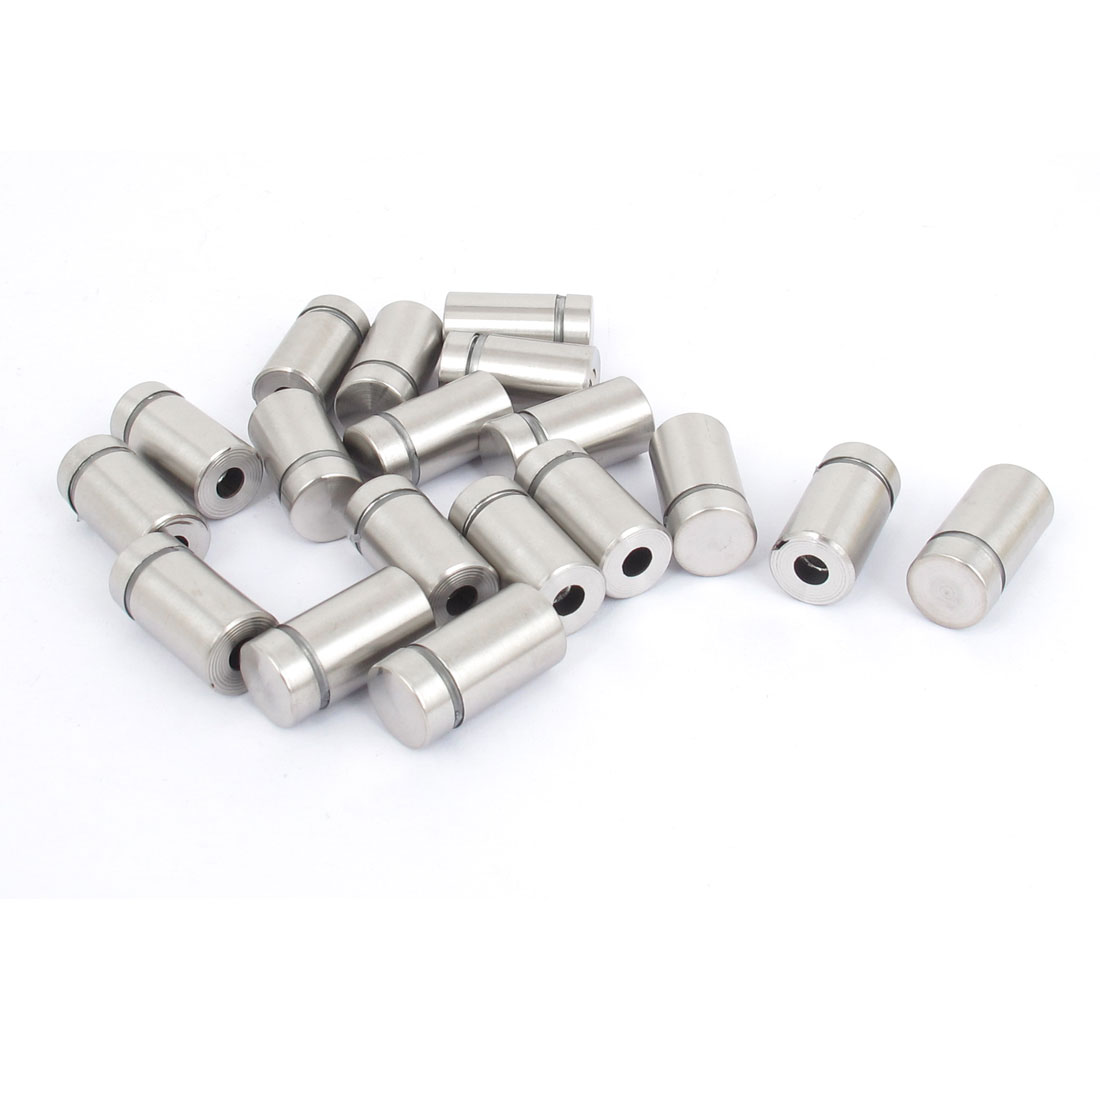 12mm x 22mm Stainless Steel Advertising Frameless Glass Standoff Pins 18pcs